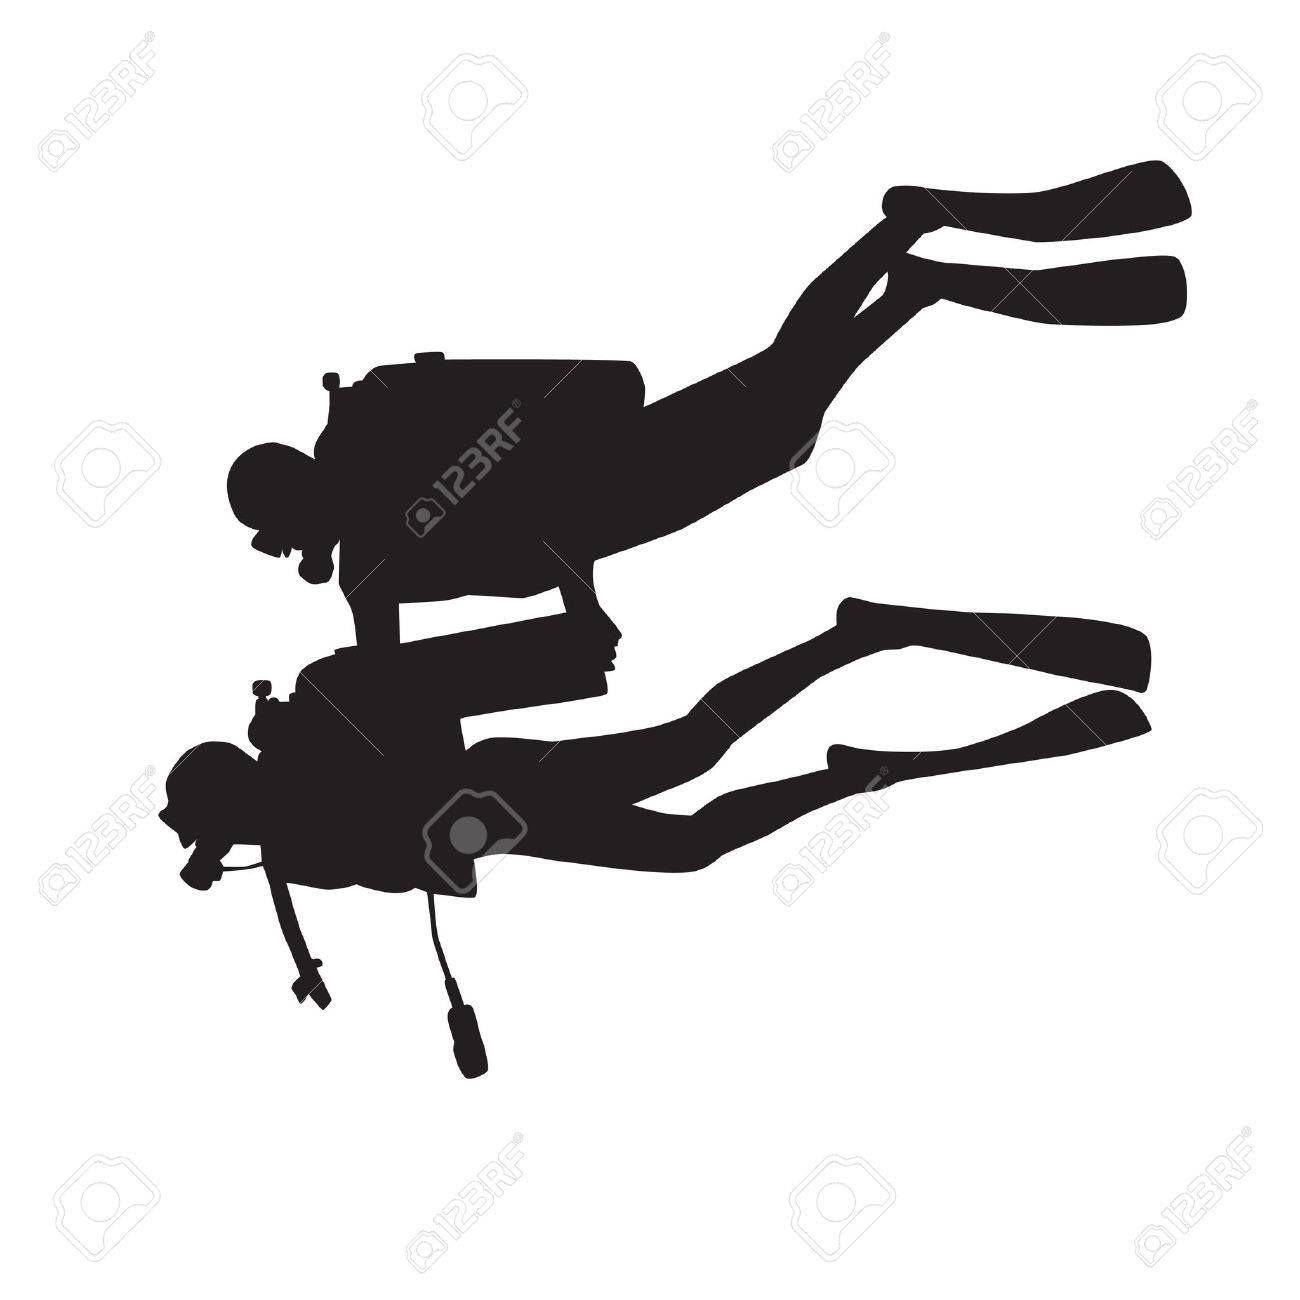 Introduction diving silhouette. Diver with instructor Stock Vector - 2807542